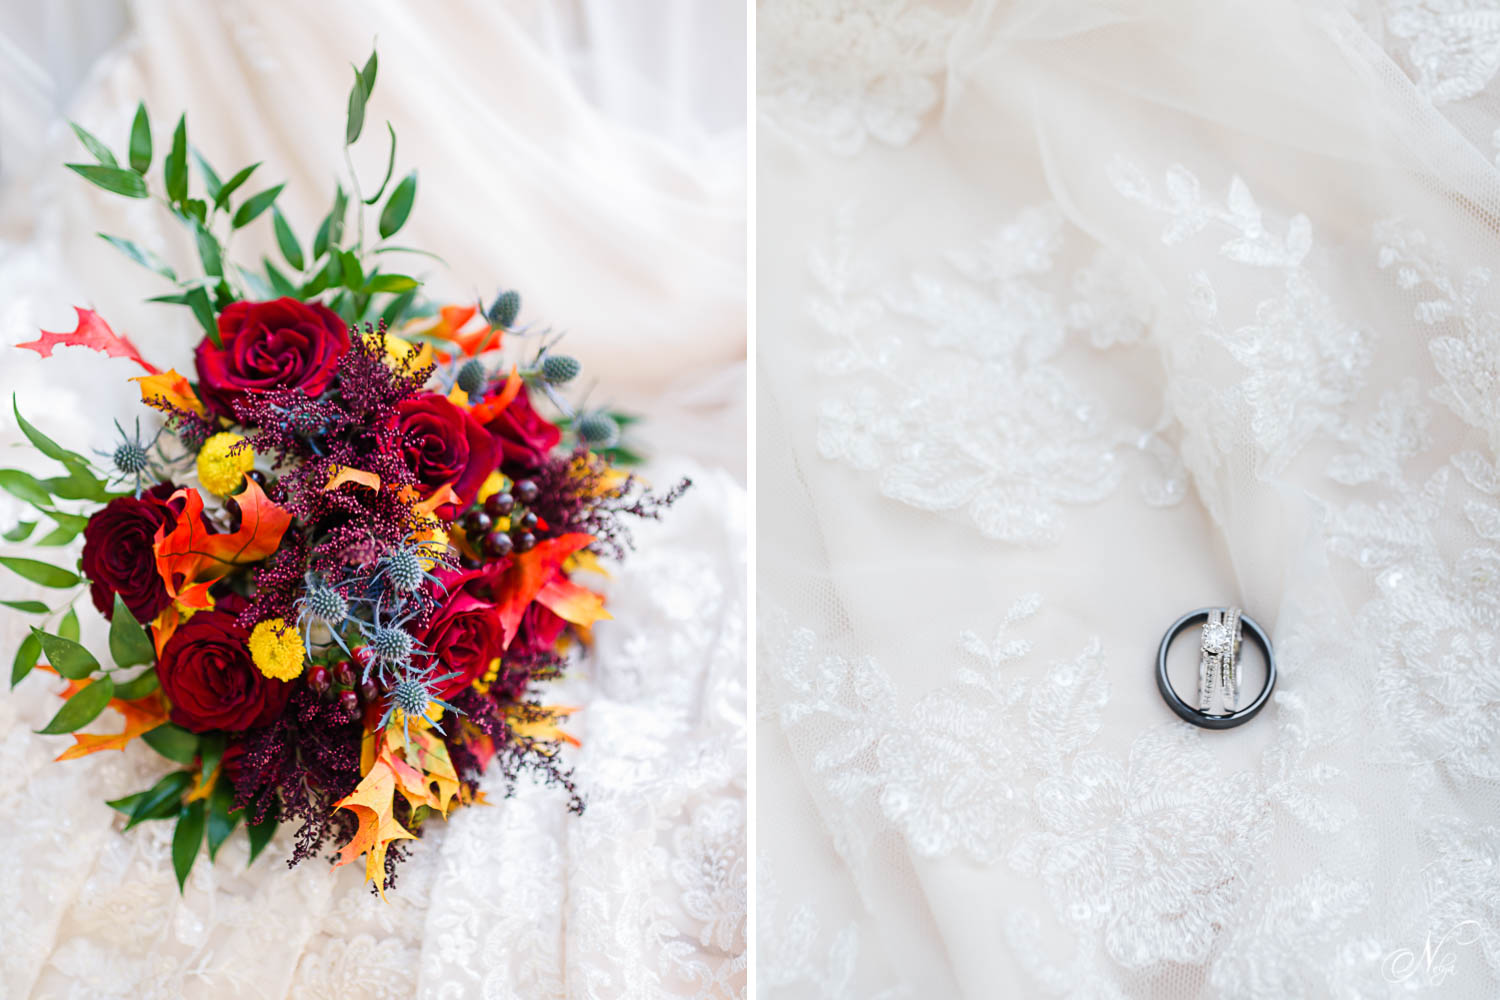 bold fall red, orange and yellow wedding bouquet. And wedding rings on white lace